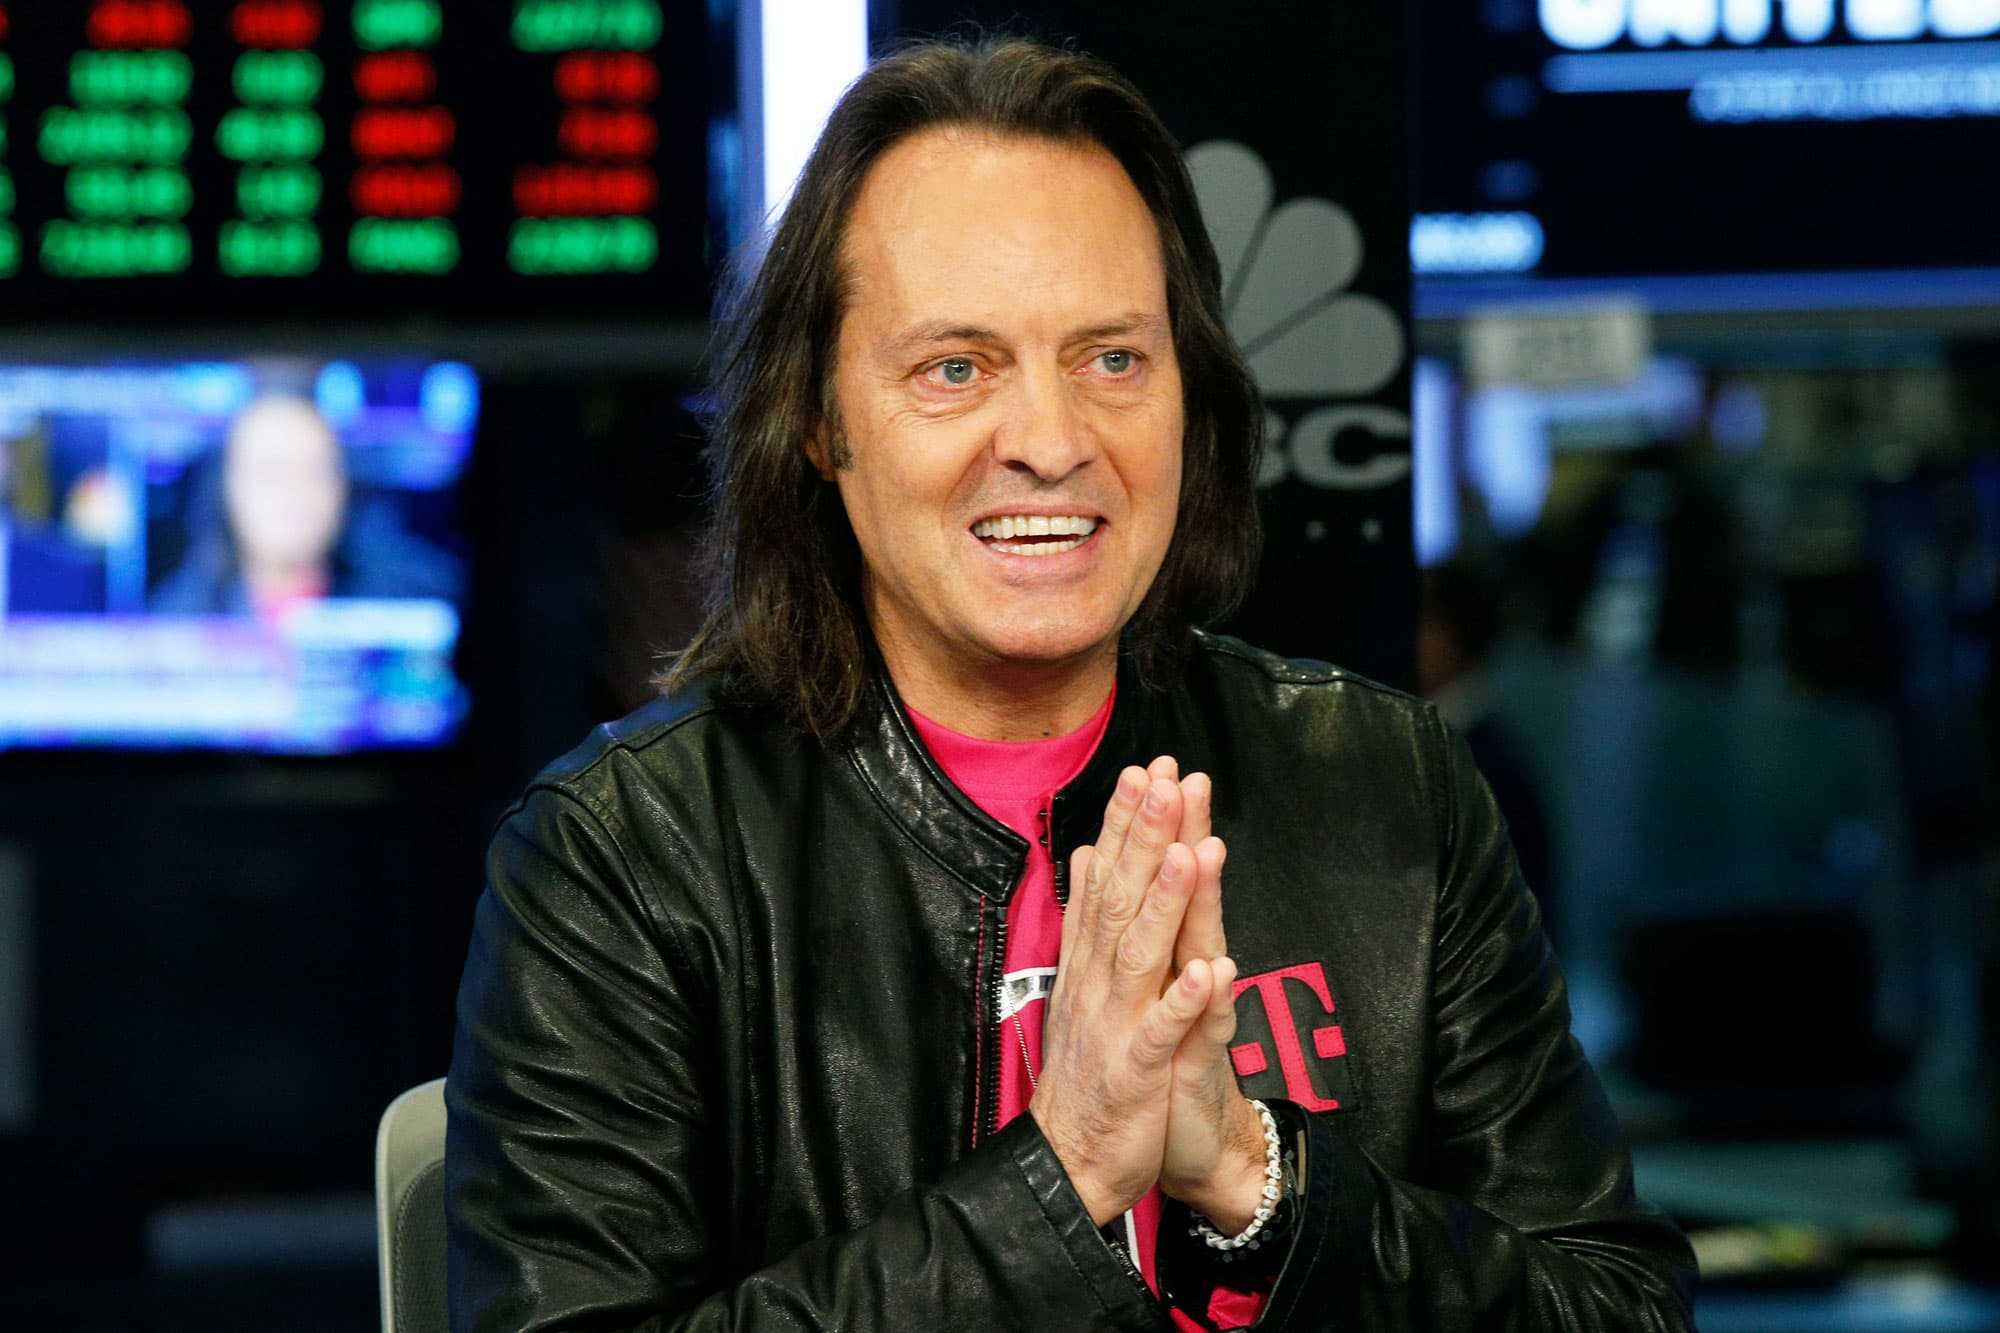 Legere Is Out As T Mobile Ceo As Sprint Merger Officially Closes